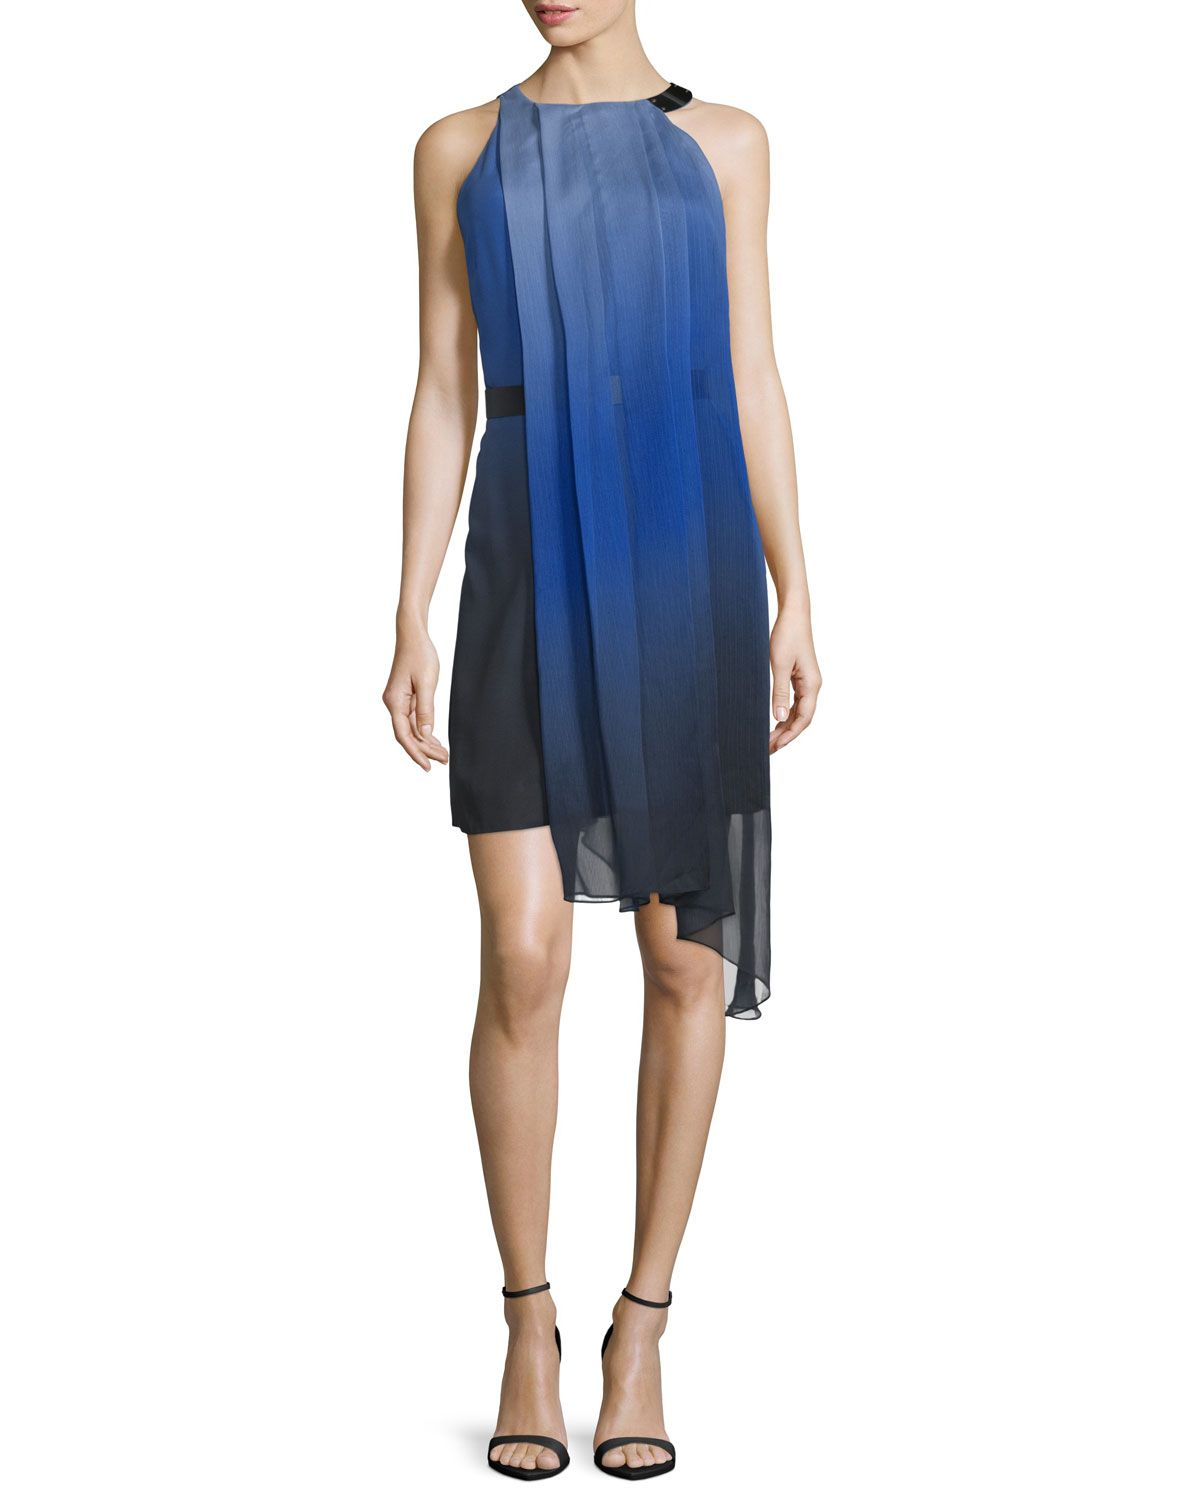 32c83b22a9b2 Halston Heritage Sleeveless Ombre Pleated Dress